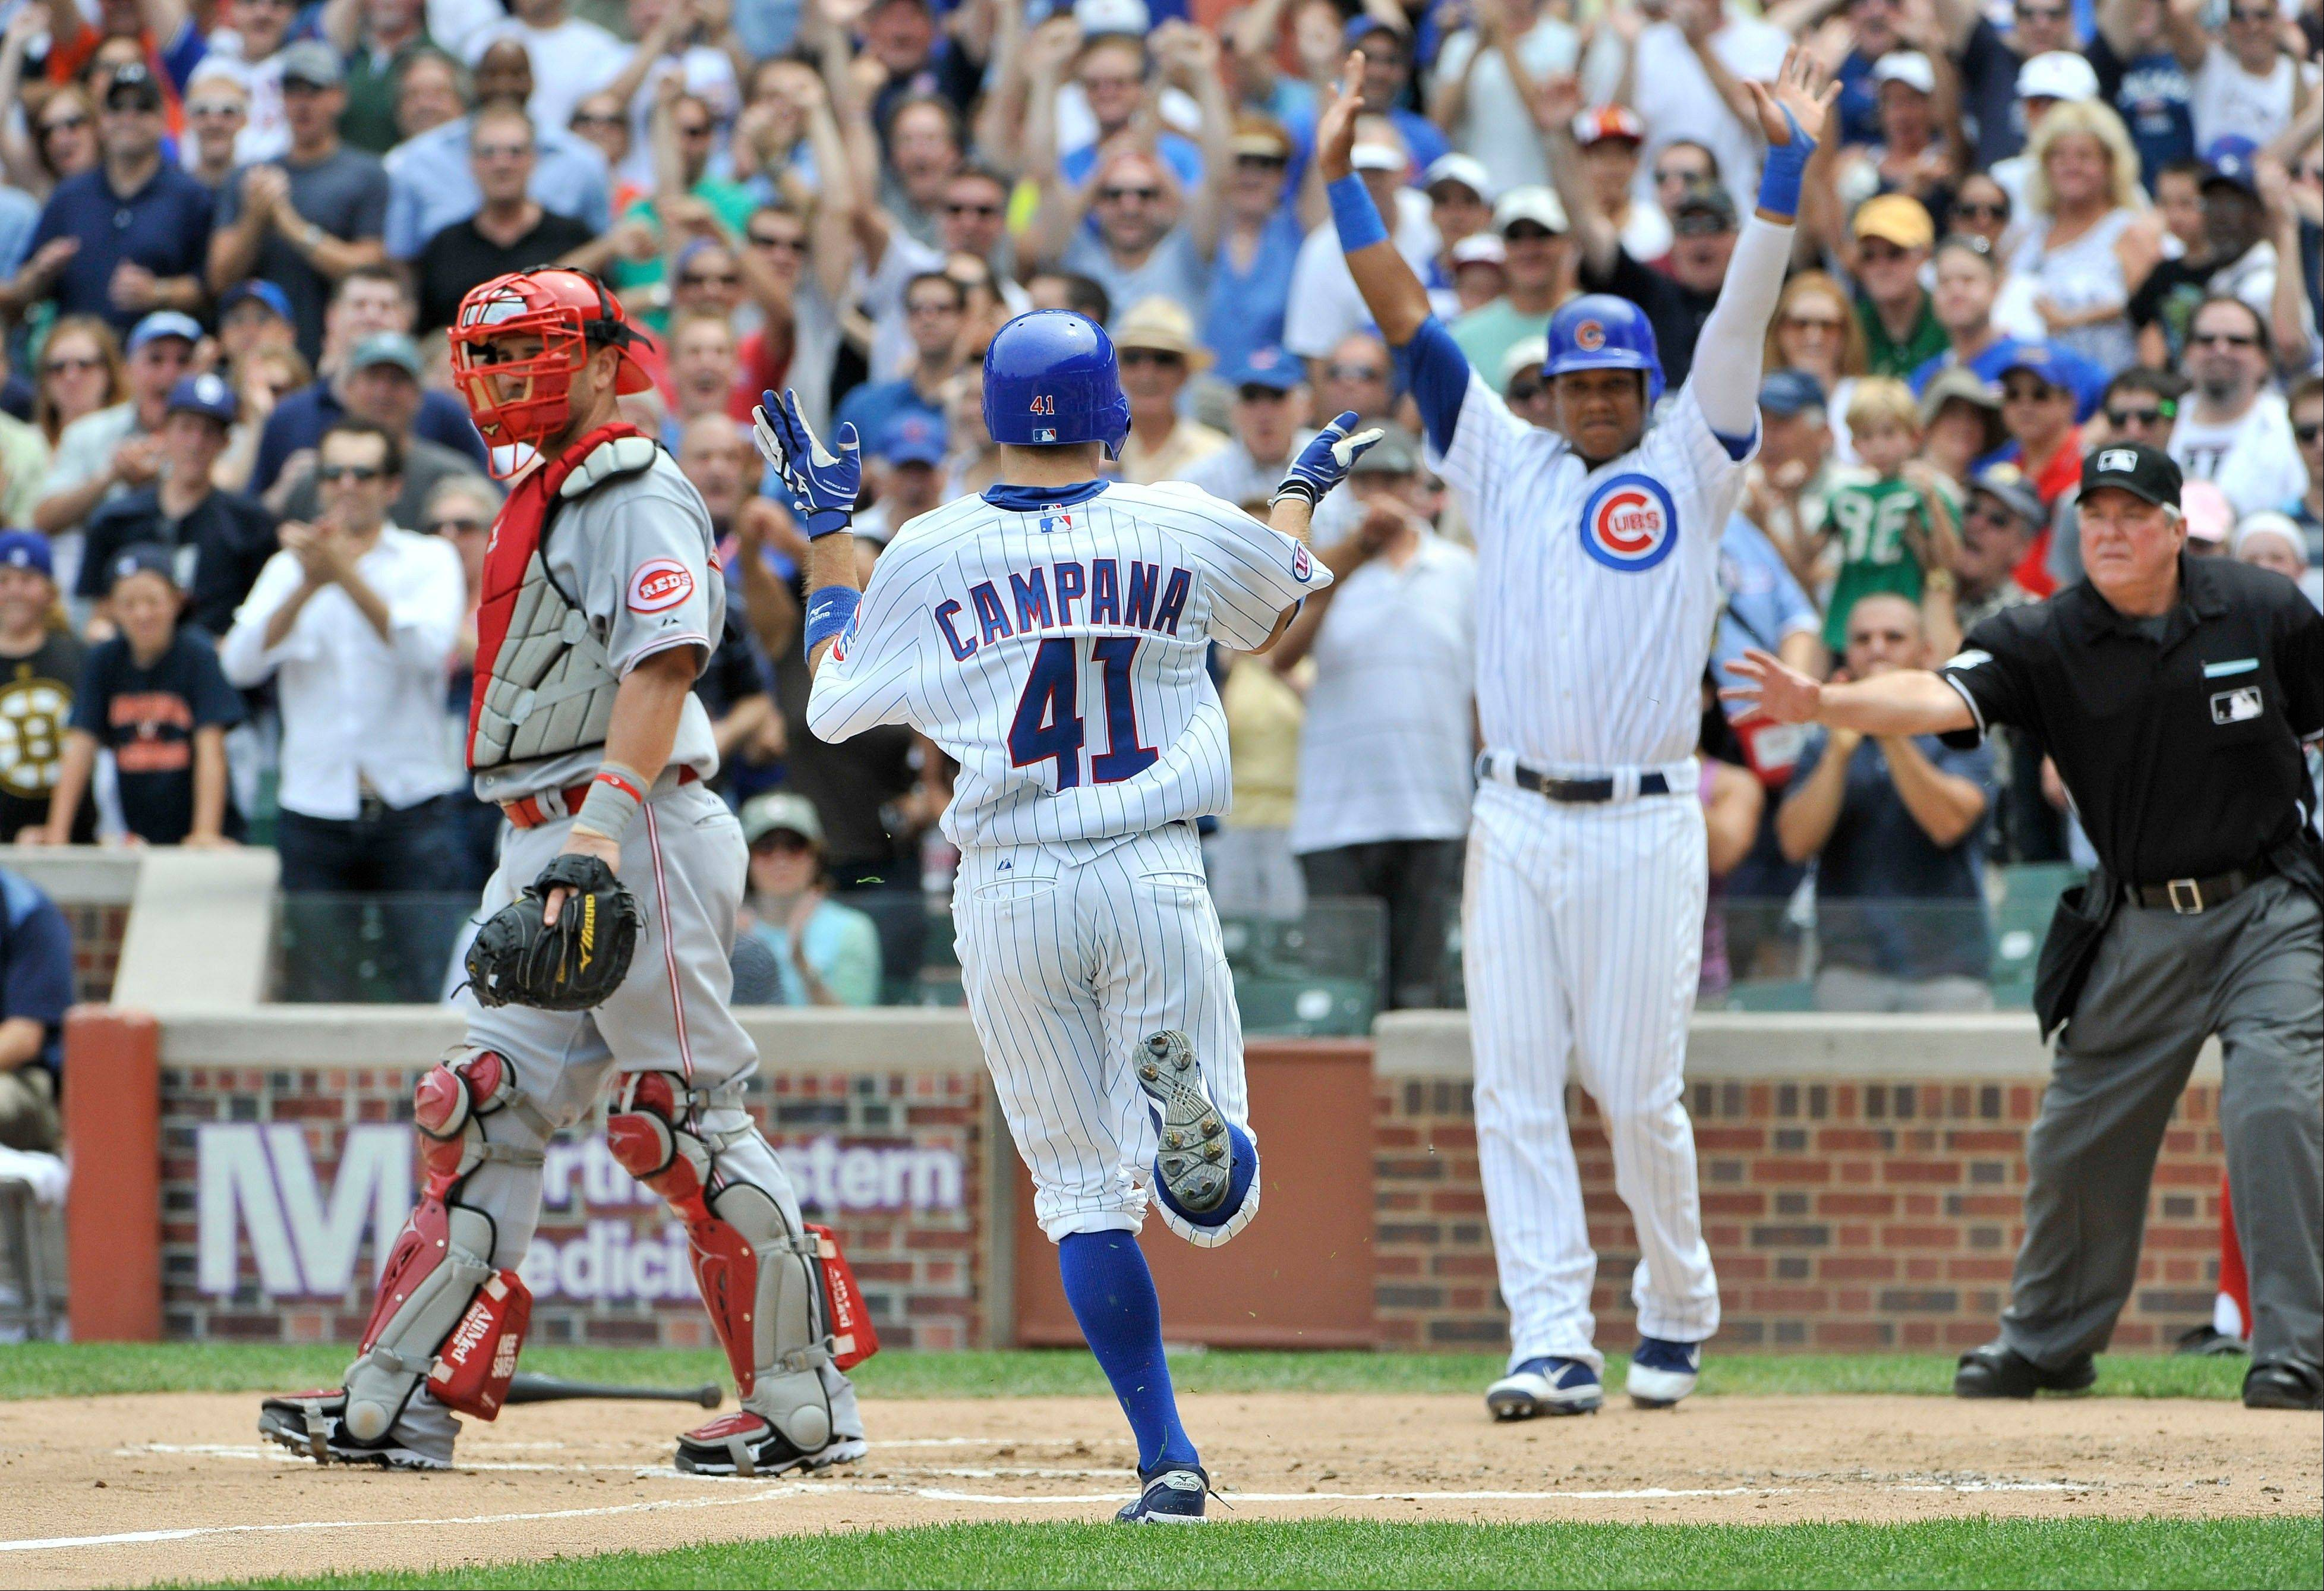 The Cubs� Tony Campana, center, heads toward home plate after hitting a 2-run inside-the-park home run that scored Starlin Castro, right. It was the first inside-the-park homer at Wrigley Field since 2001.